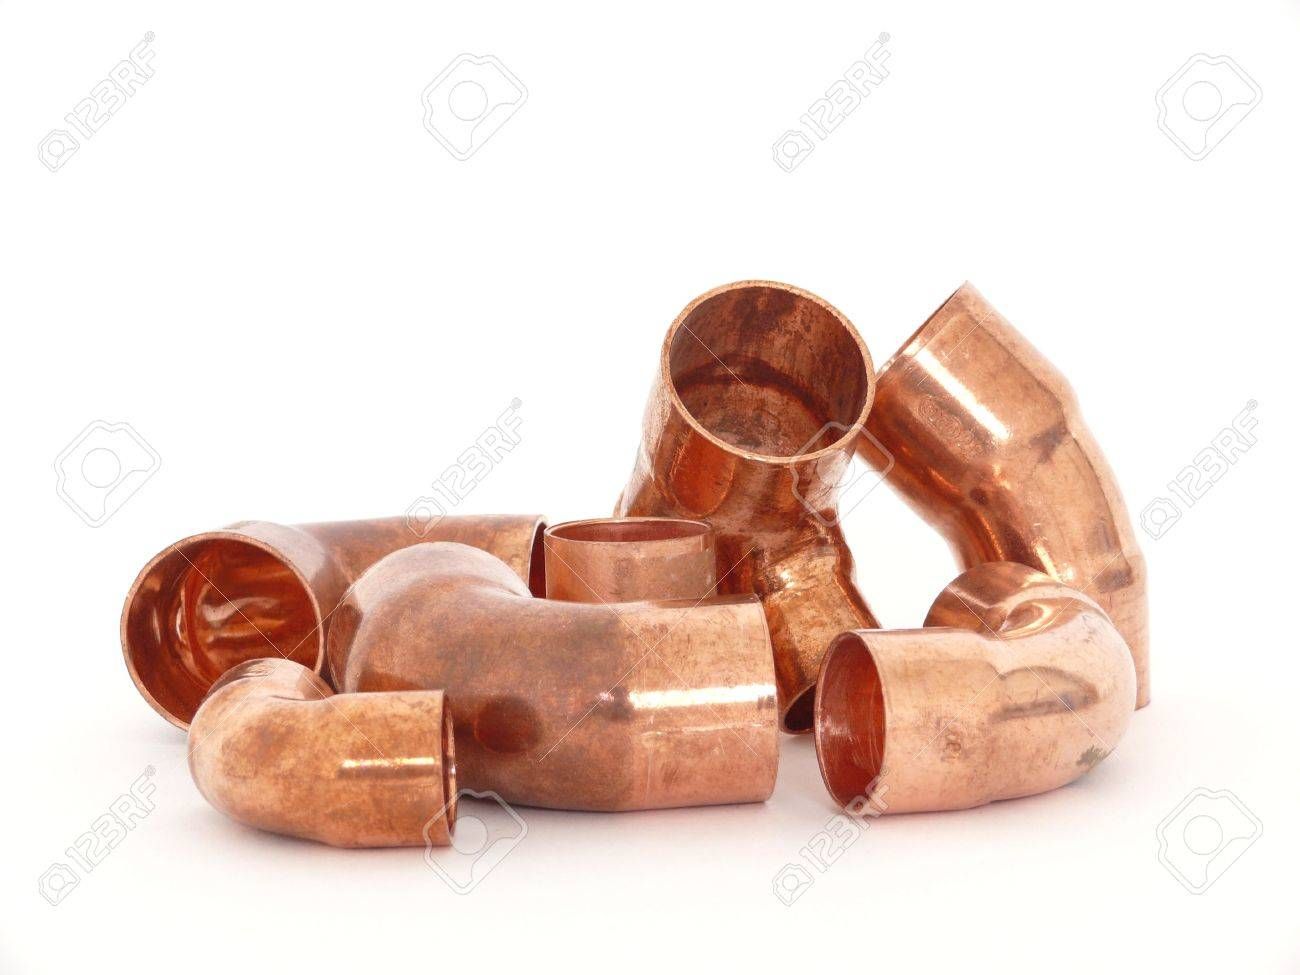 Copper brass plumbing fittings isolated on white Stock Photo - 6674282